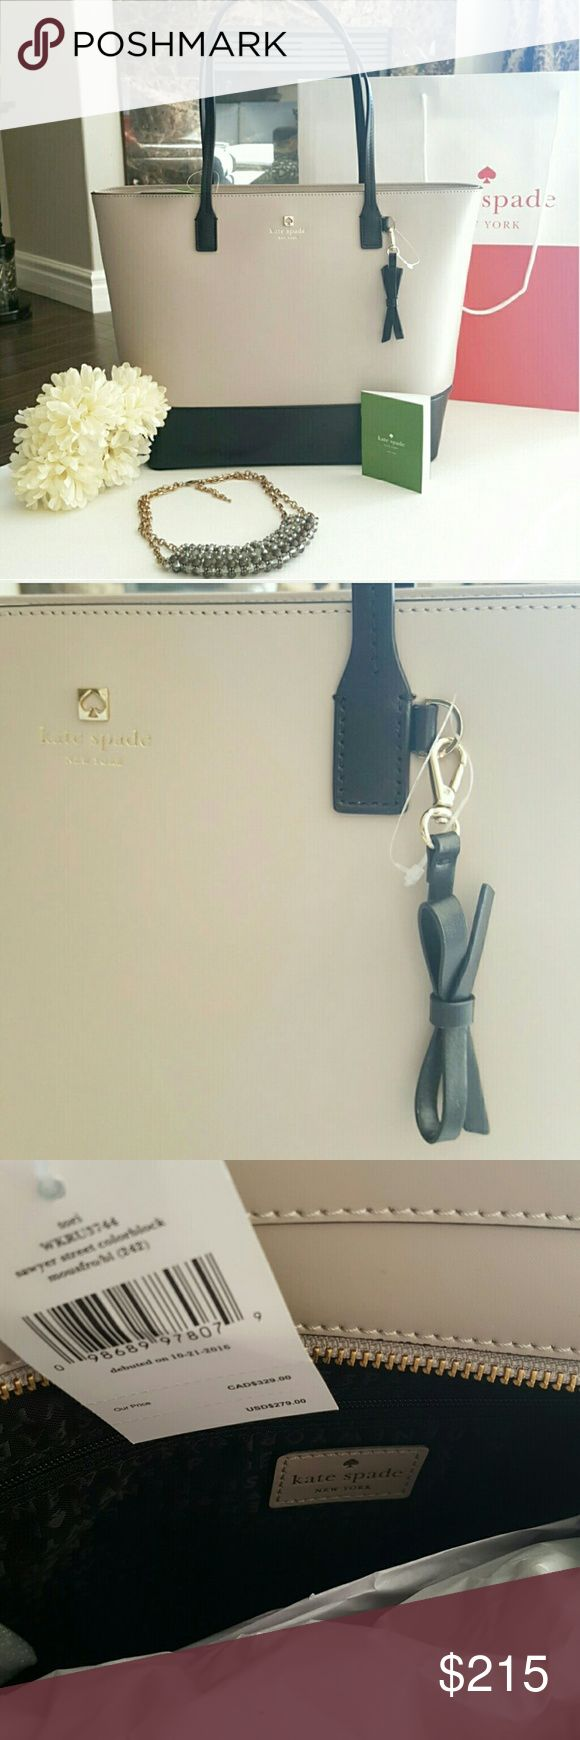 """NWT KATE SPADE   TORI SAWYER ST TOTE * Style: Tori Sawyer Street Colorblock   WKRU3744 * Color: Mousse frosting/black (242)   Like a light stone gray. Very neutral. * 11.5""""H x 12.2""""W x 4.1""""D * Strap drop: 8.7""""   Shoulder bag length  * Smooth leather * KS blk jacquard lining * 14-karat light gold plated hardware * Top zip closure * Removable bow keyfob! * Inner slip pockets and zip pocket * Gift bag included only while supplies last so plz ask * MATCHING WALLET LISTED SEPARATELY   Reasonable…"""